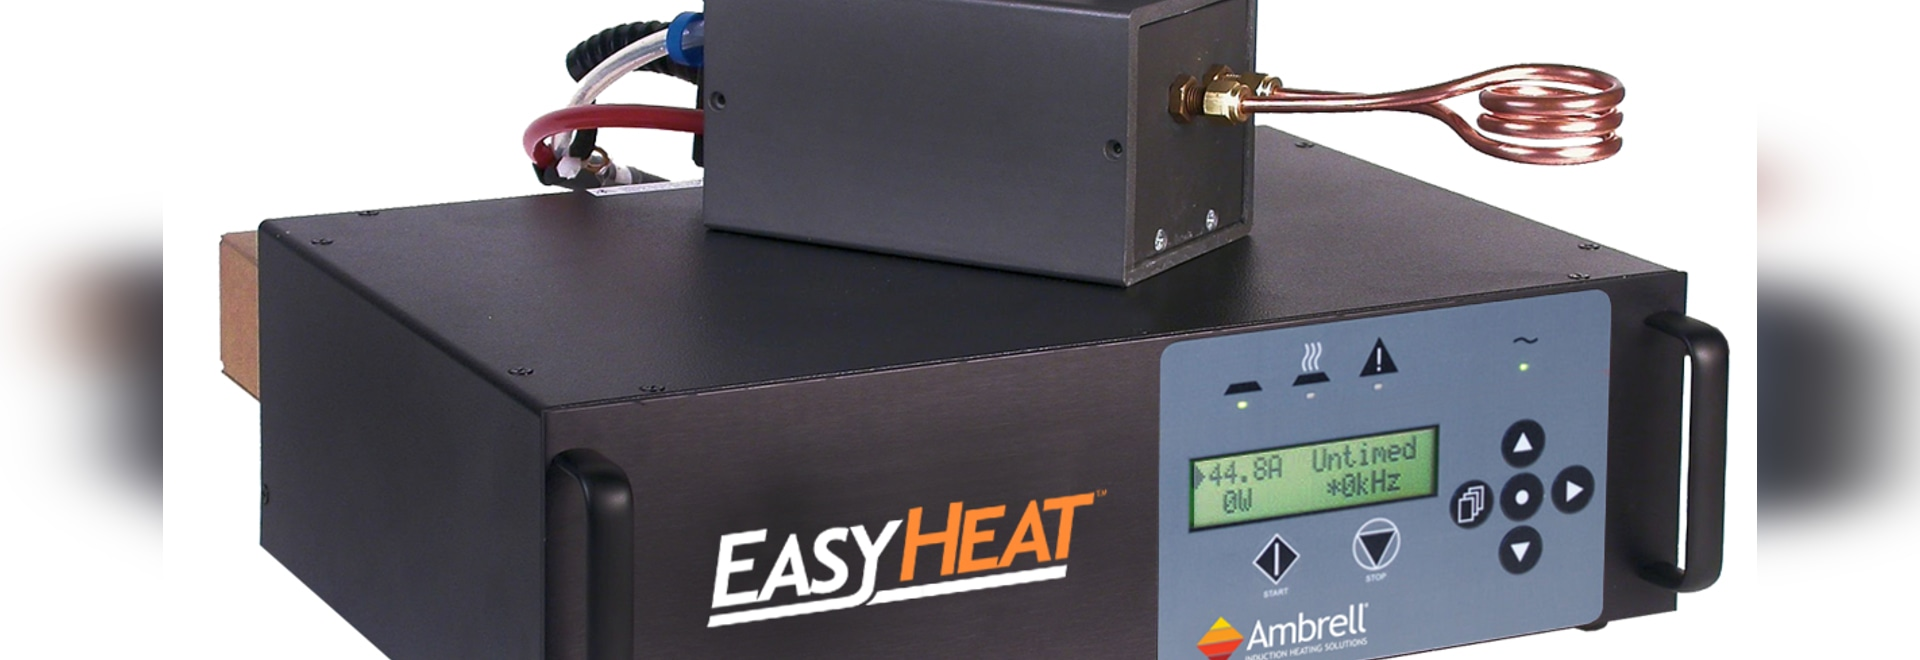 Ambrell EASYHEAT Induction Heating System